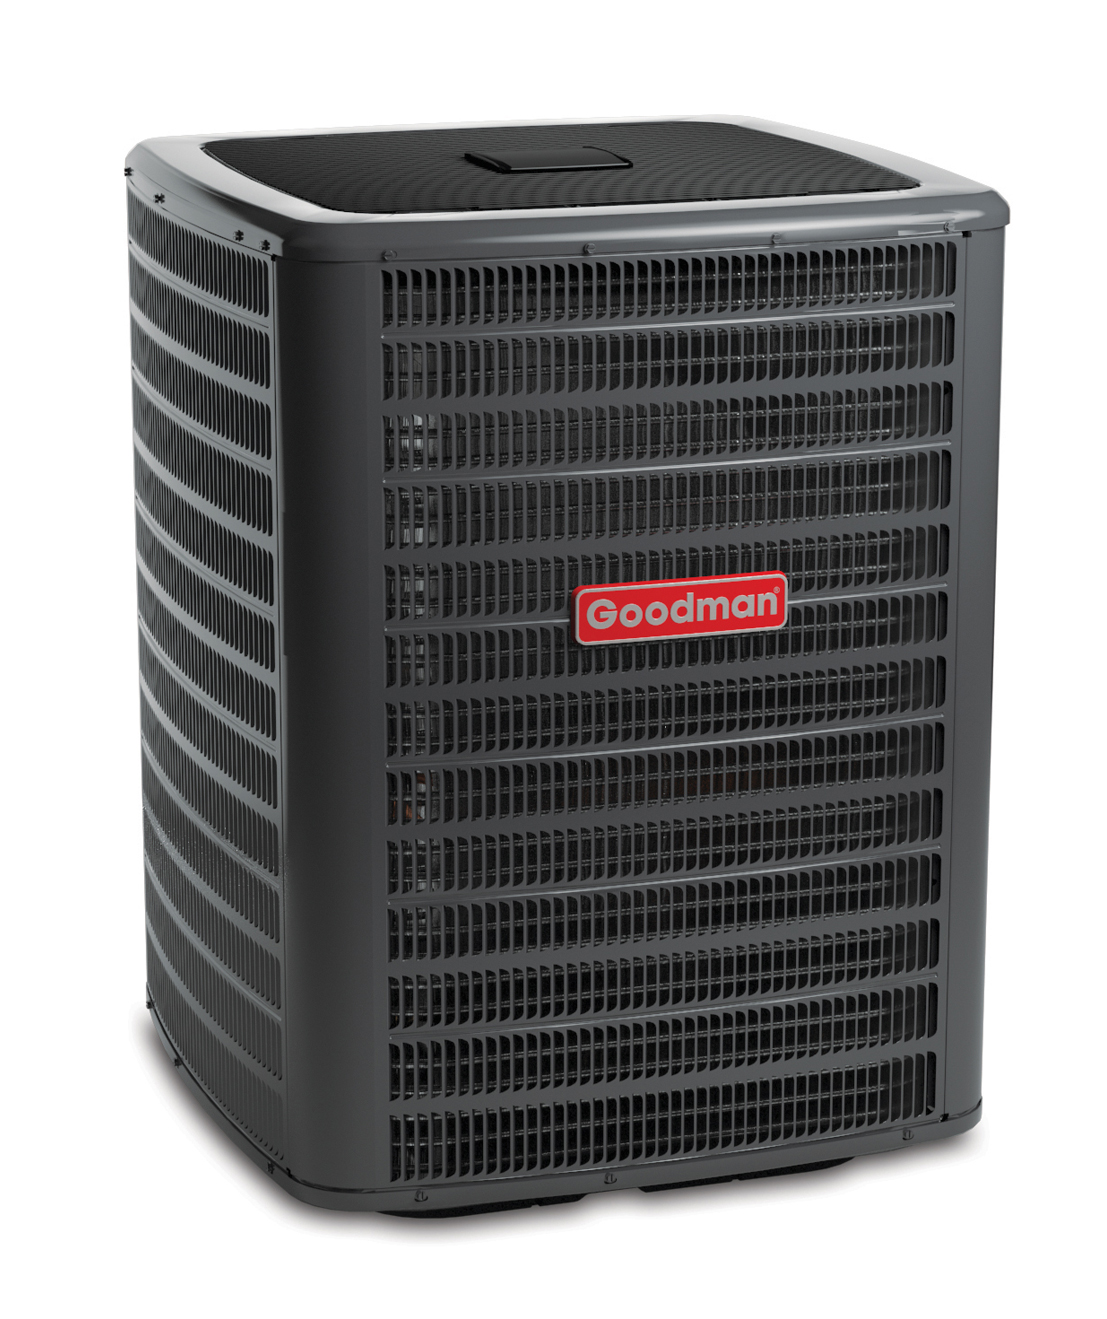 Goodman GSX16 Air Conditioner